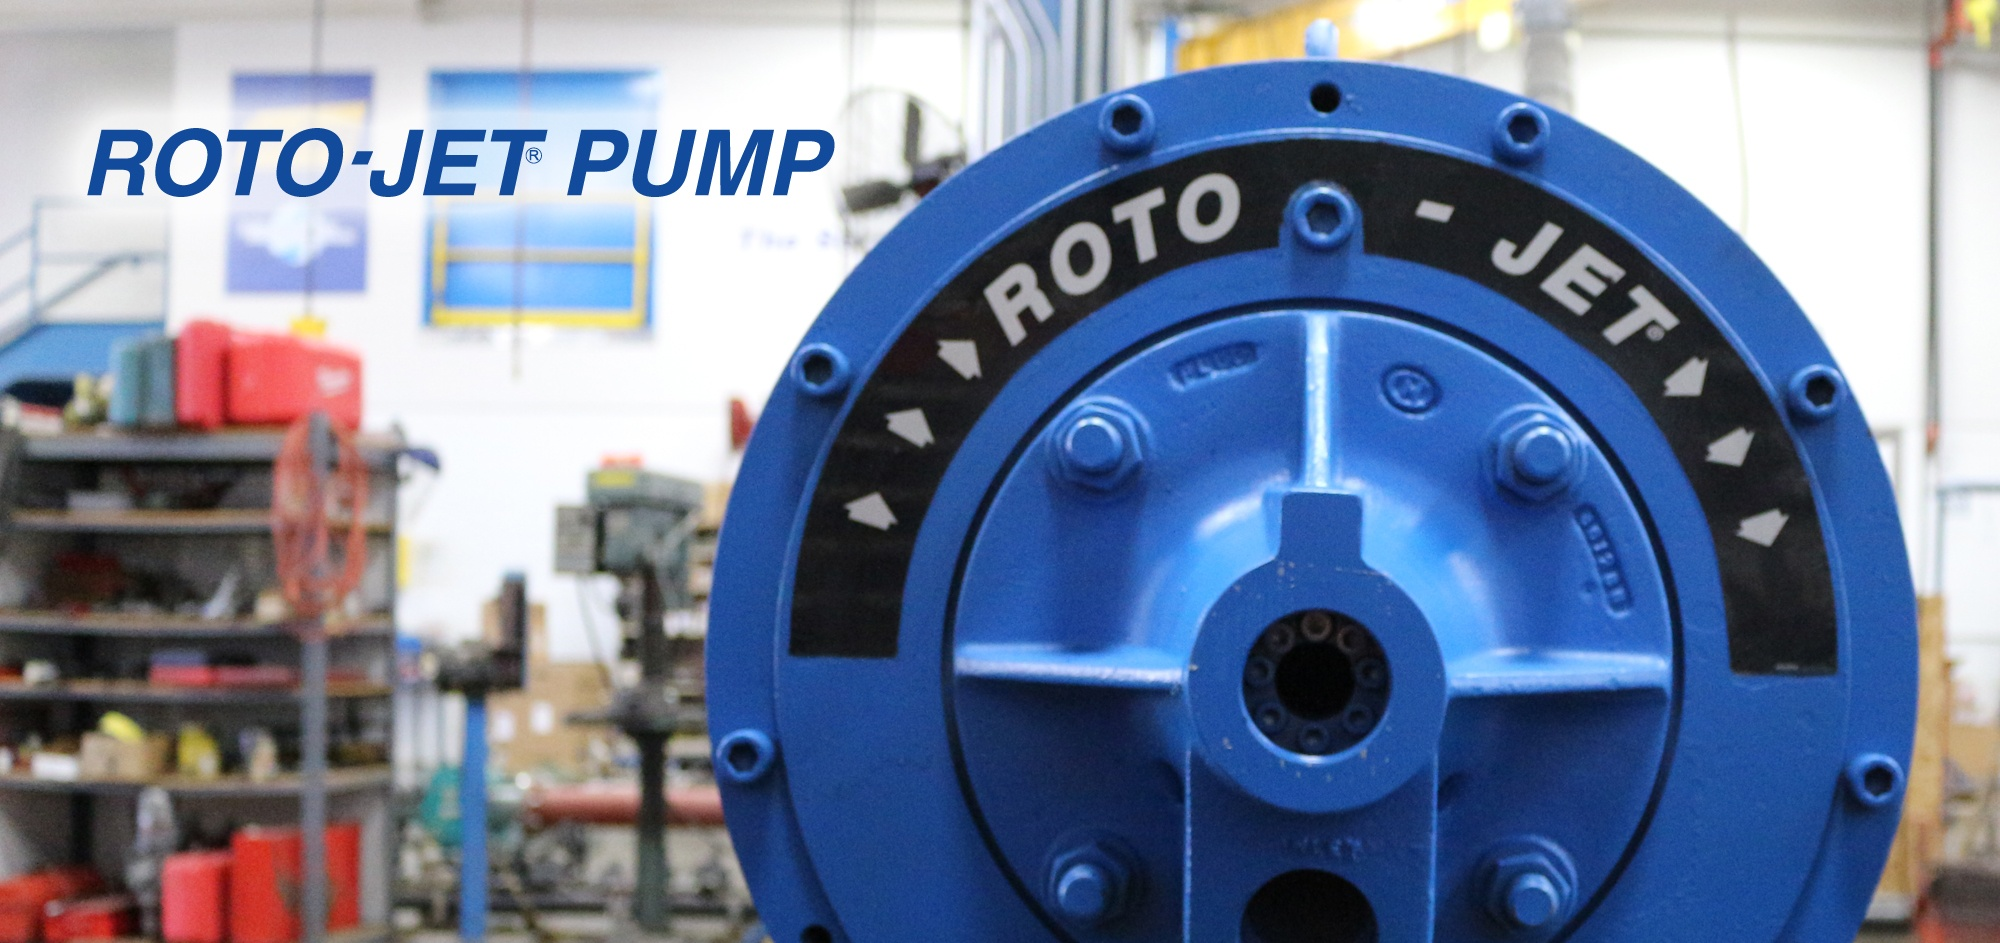 authorized service and repair center for roto jet pump rh craneengineering net Roto-Jet Pump Parts Roto Jet Pump Curves